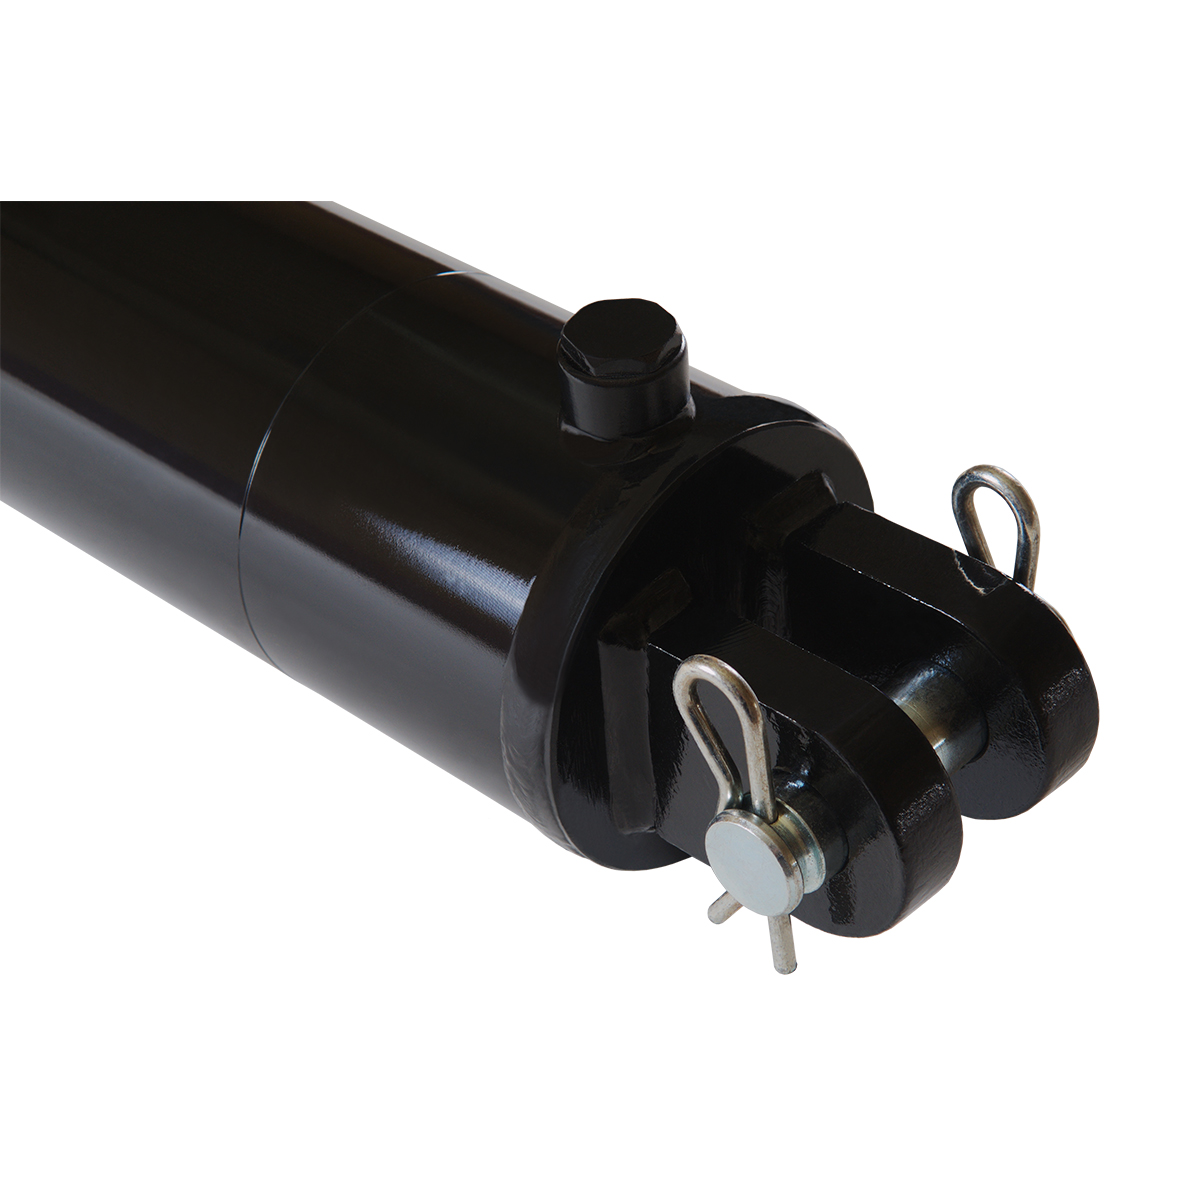 4 bore x 6 stroke hydraulic cylinder, welded clevis double acting cylinder | Magister Hydraulics